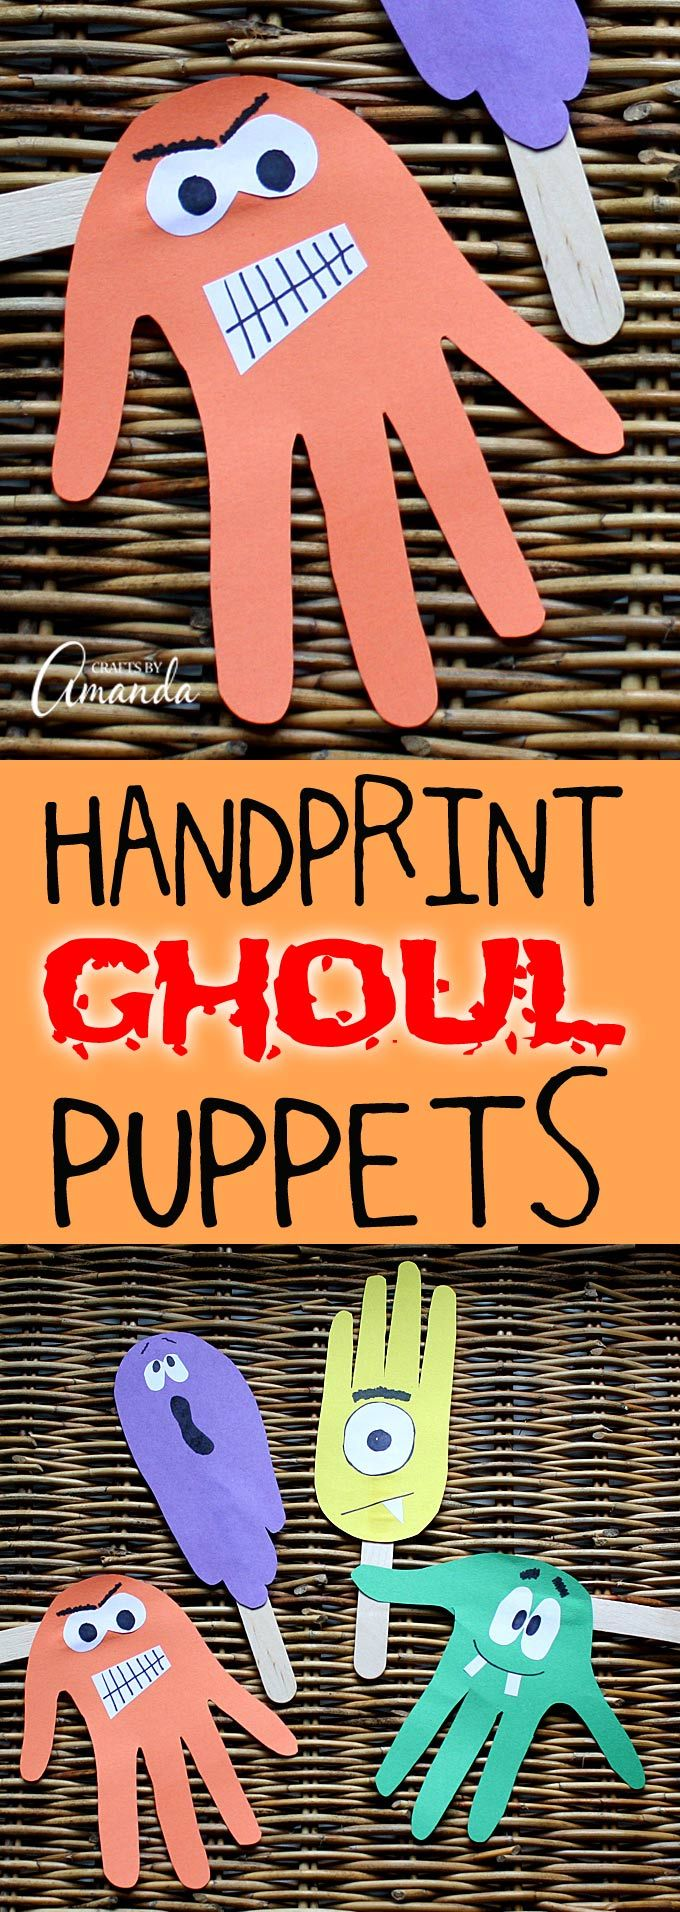 Halloween classroom crafts - Handprint Puppets For Halloween Ghoulish Fun For Kids